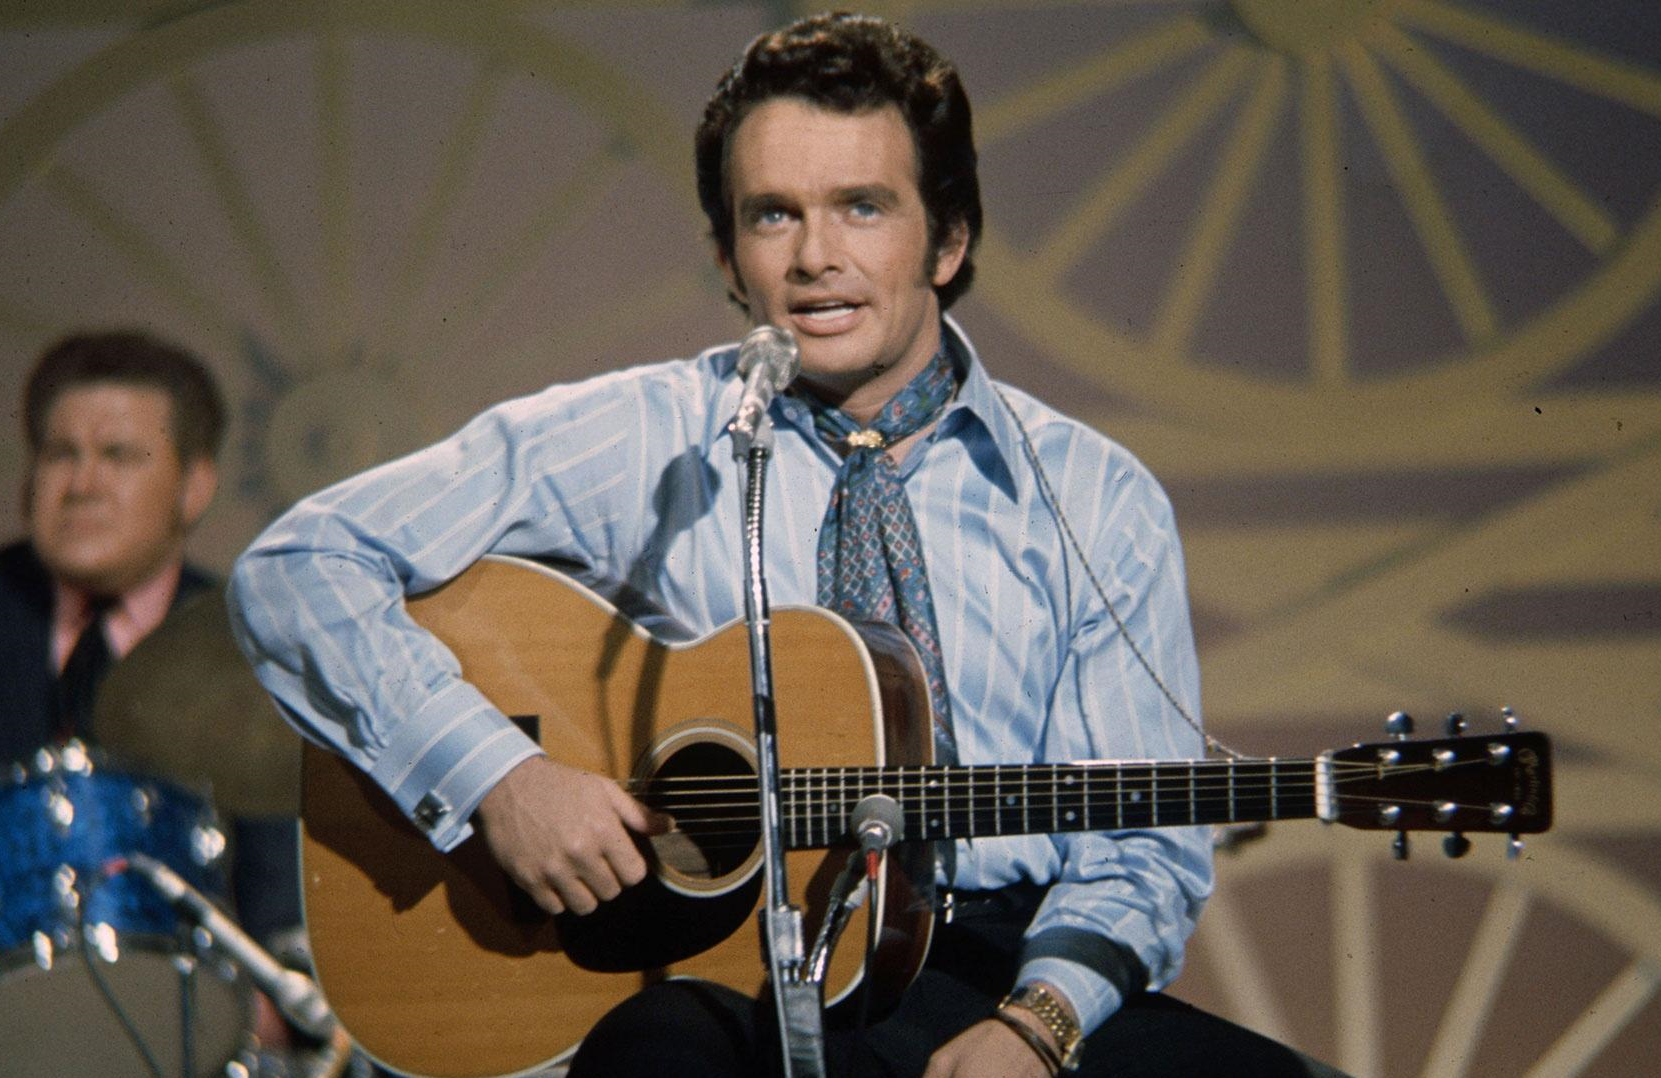 An image from Country Music of Merle Haggard on the set of The Johnny Cash Show in 1970 .(Photo: Les Leverett / PBS)